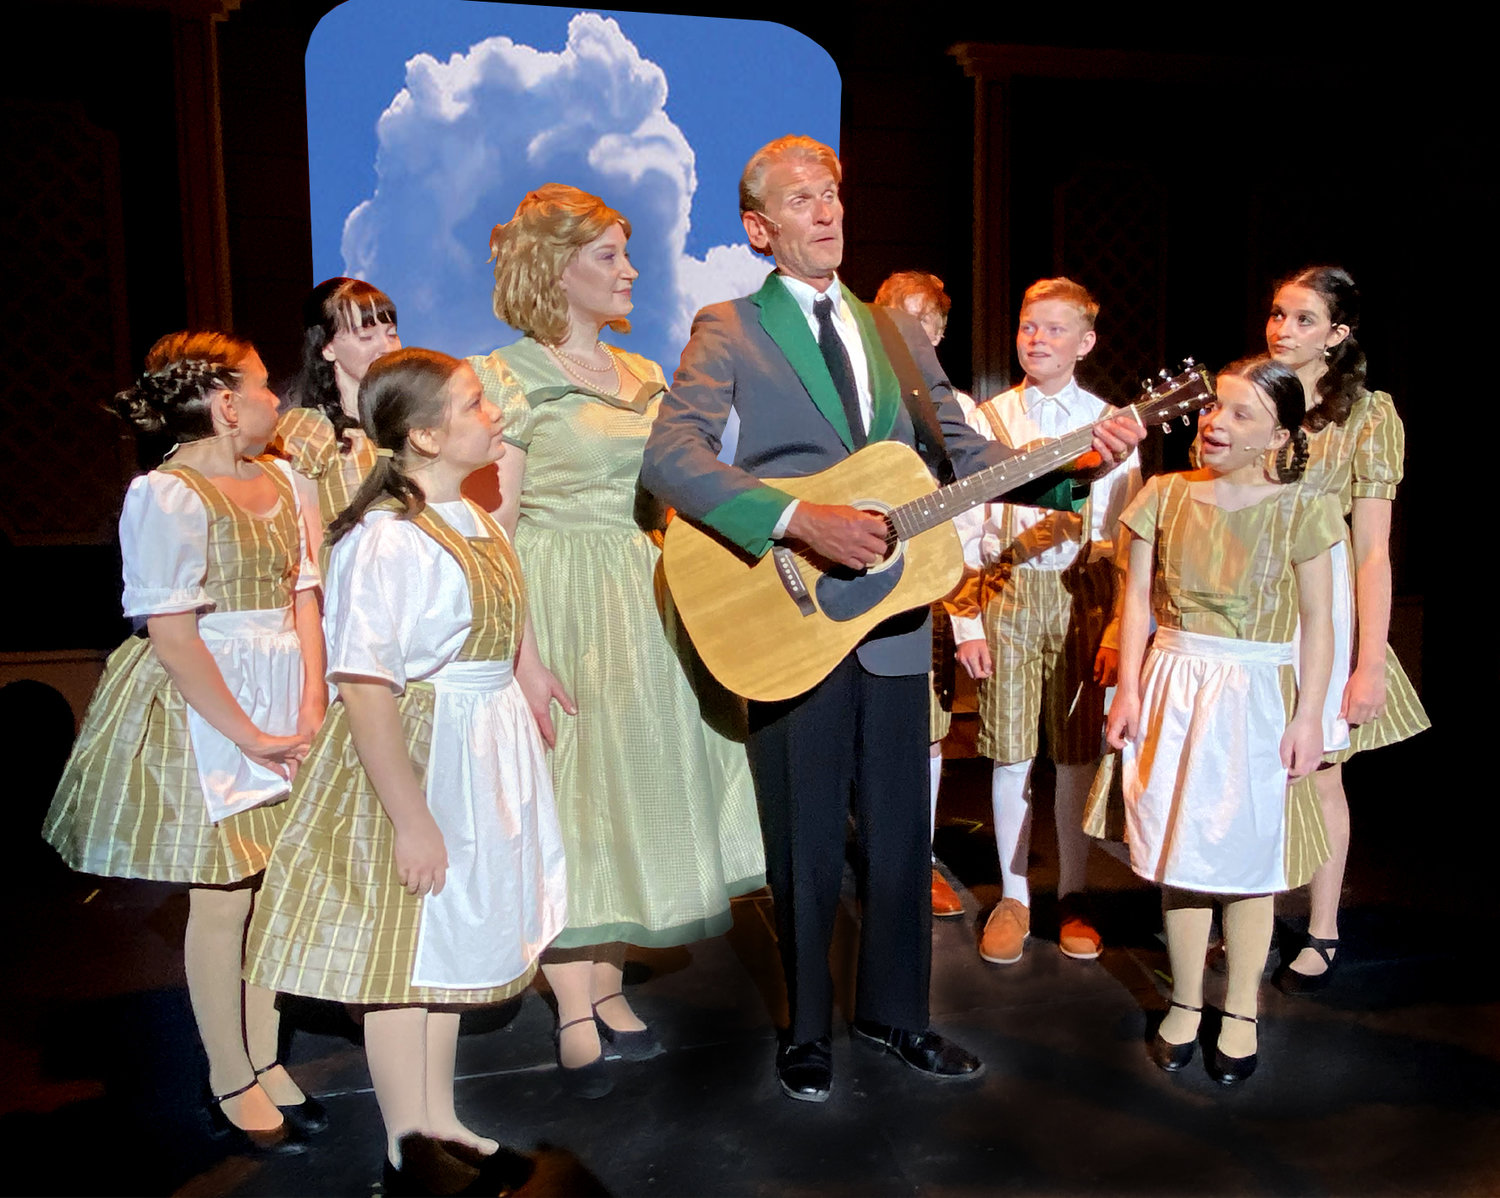 The Sound of Music will be performed March 26-April 17 at the Zao Theatre stage, 550 S. Ironwood Drive in Apache Junction.